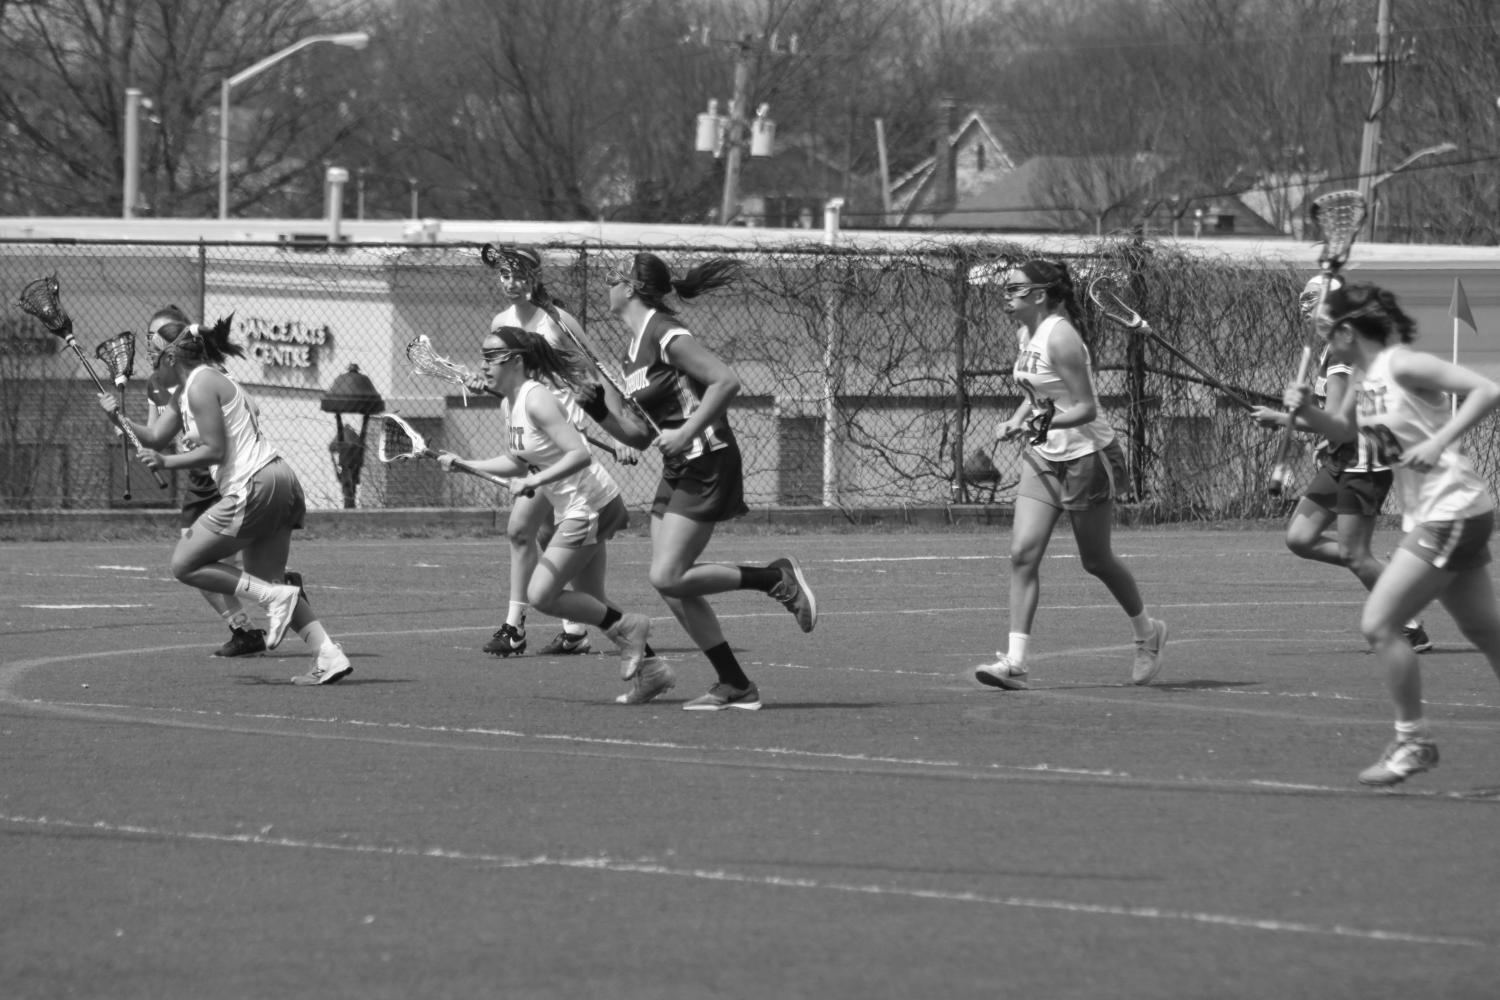 The+Vikings+girls+lacrosse+team+skirmishes+midfield+at+a+home+game+against+Lynbrook+on+April+10.+The+Vikings+won+the+game+15-7.